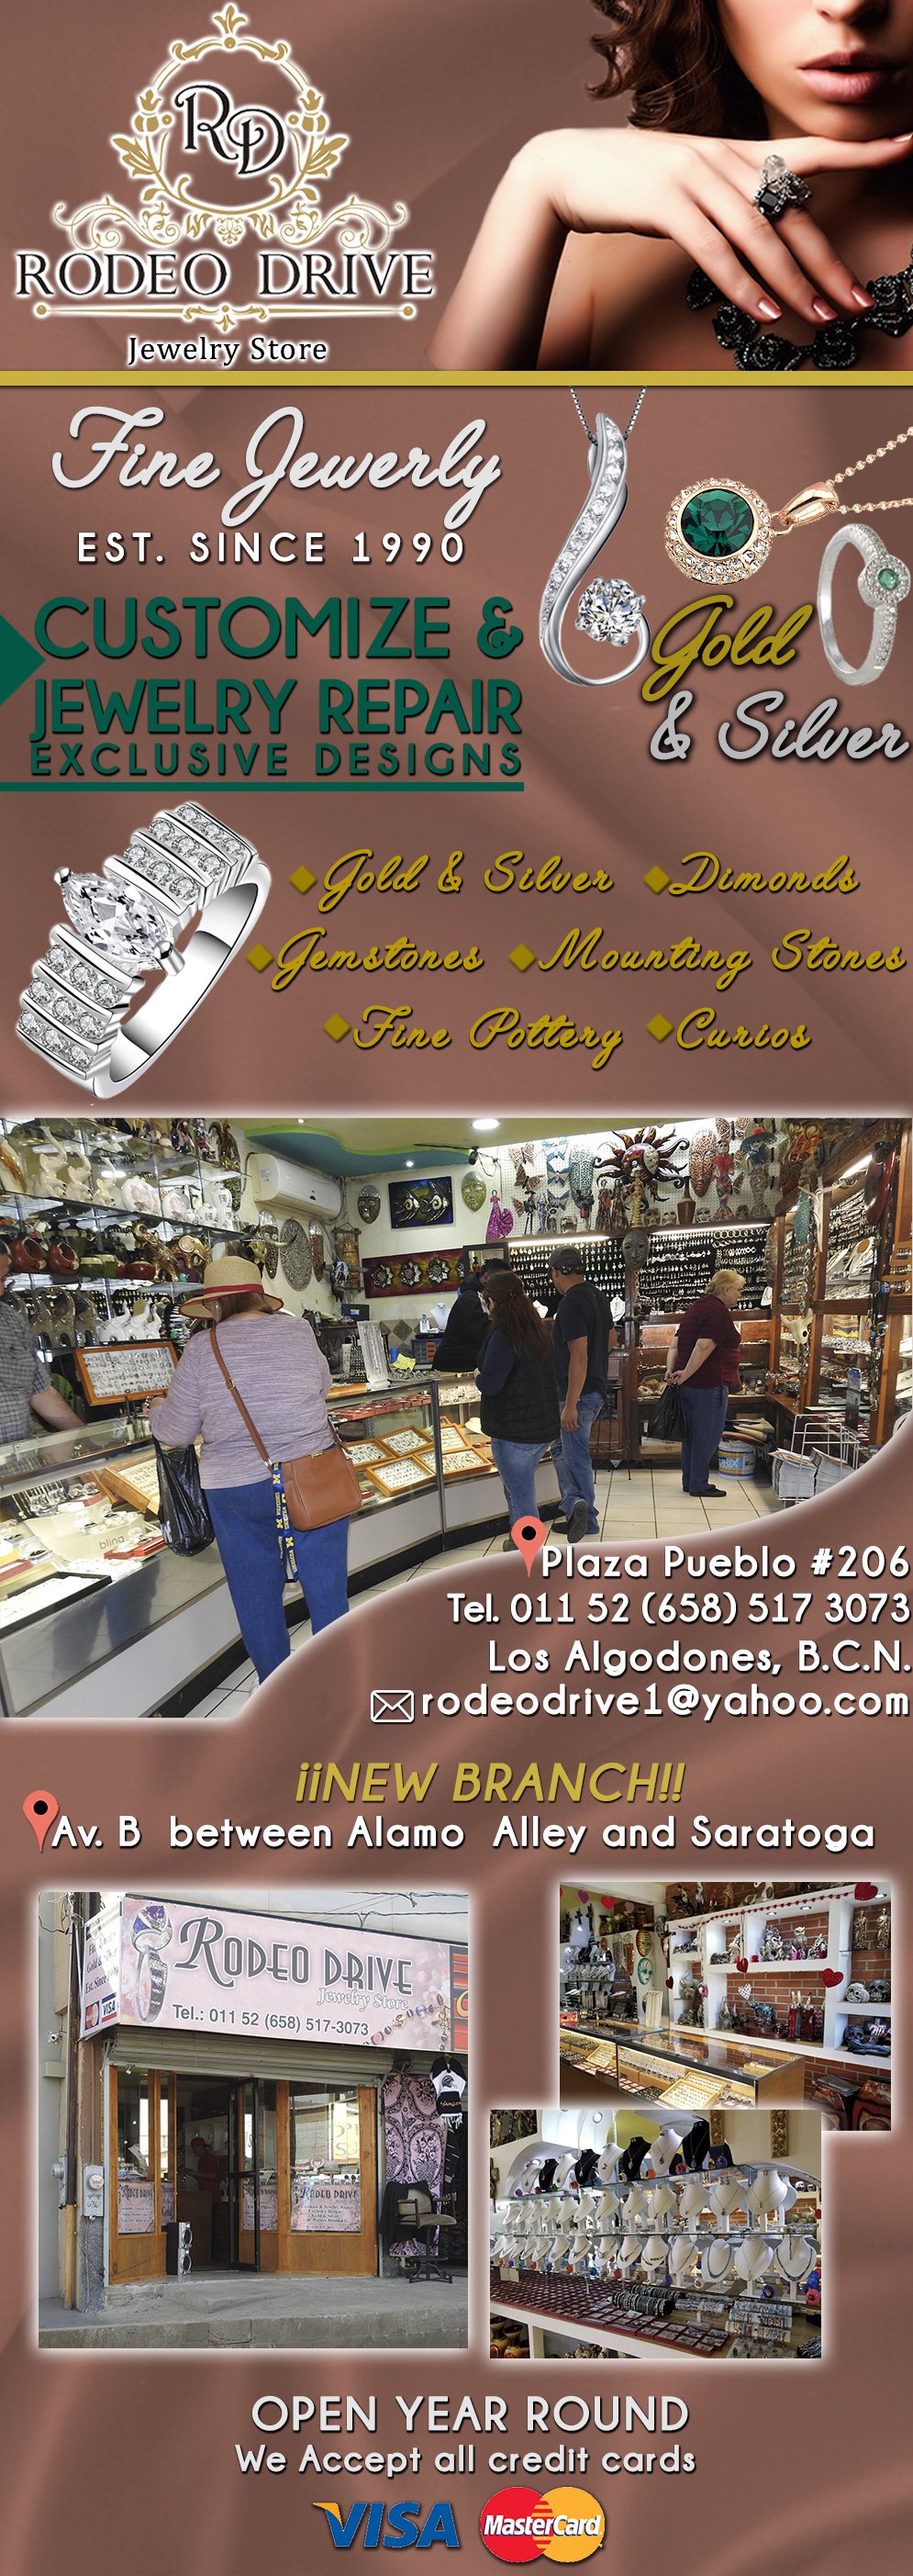 RODEO DRIVE  in Algodones  in Algodones  Jewelry Store   Fine Jewelry Gold & Silver Est. Since 1990